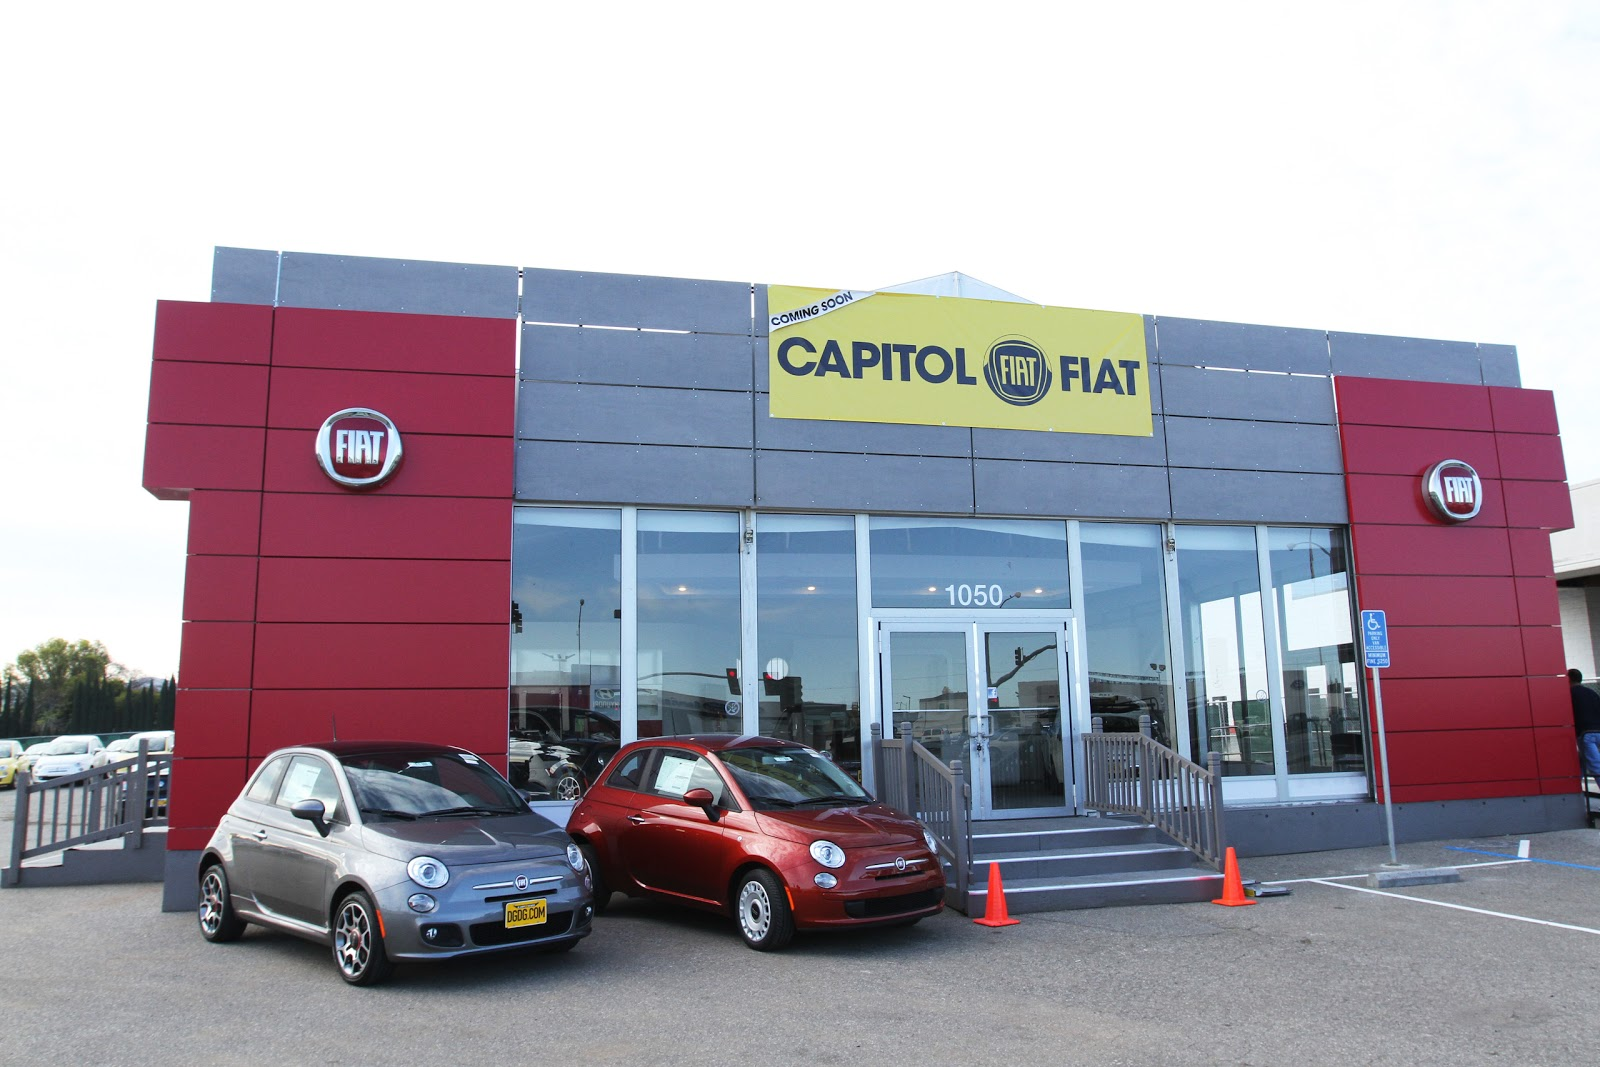 Capitol Fiat The Newest Member Of Del Grande Dealer Group At 1050 Expressway Auto Mall San Jose Ca 95136